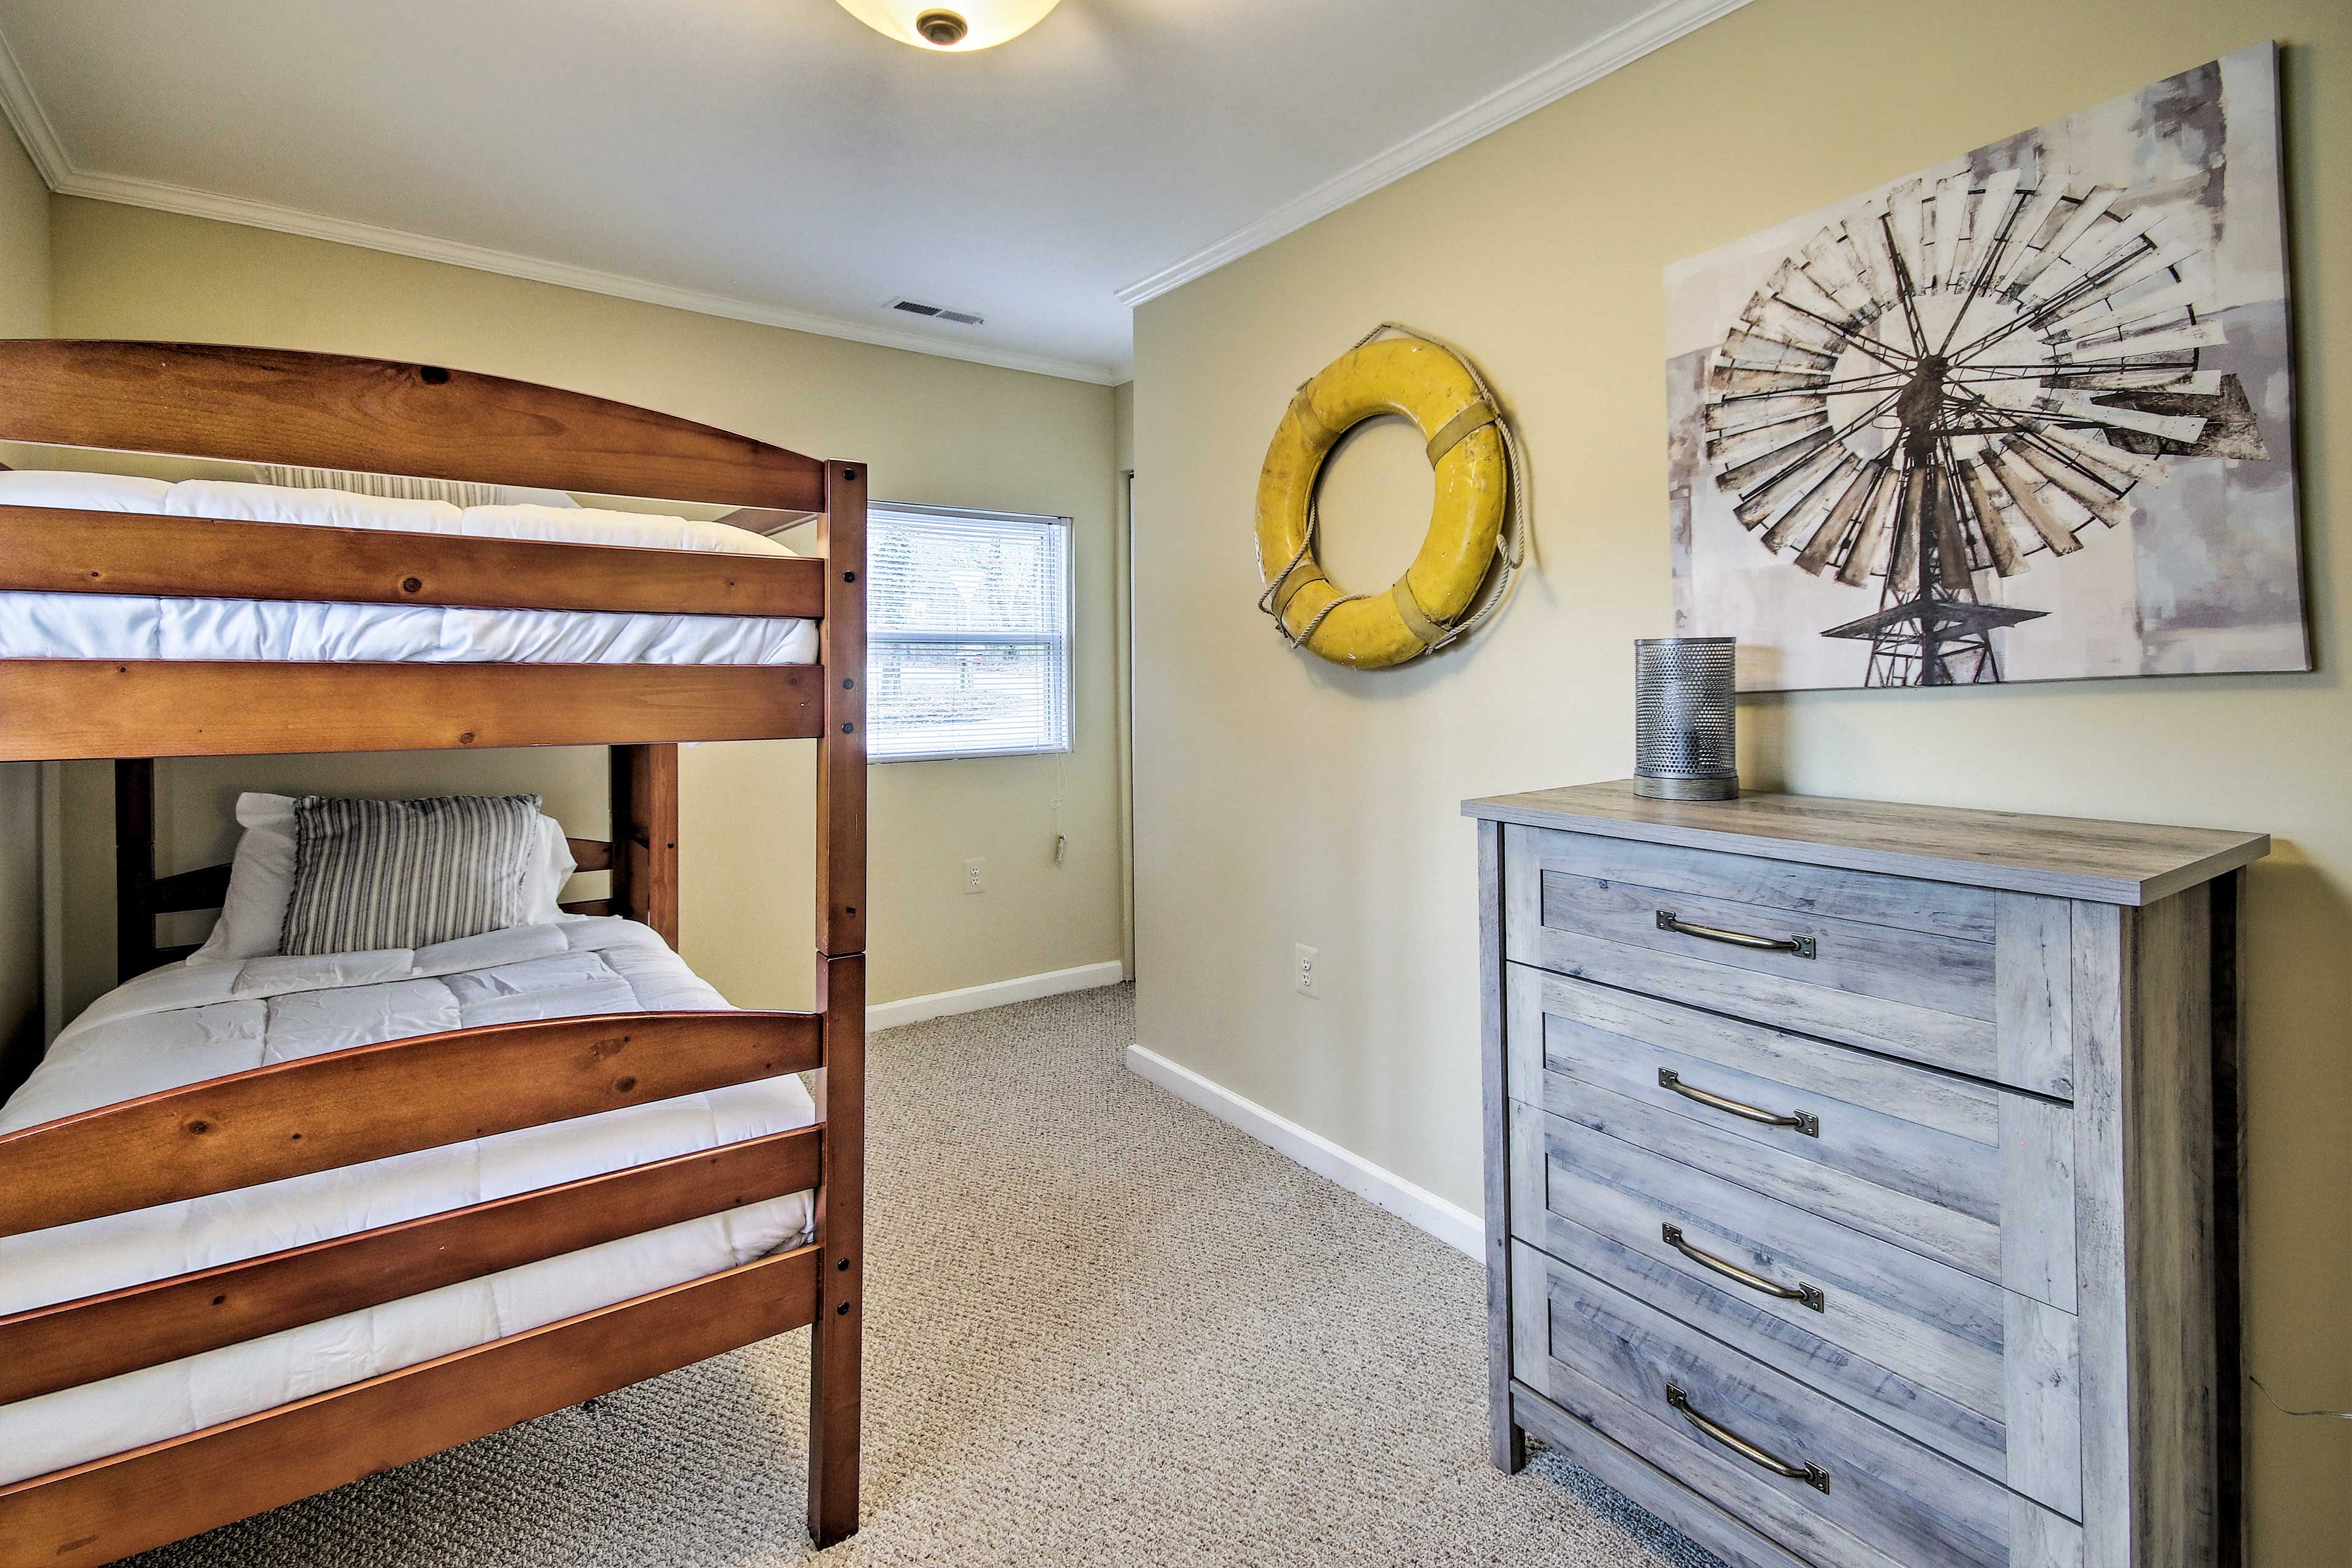 The kids will feel right at home in this bedroom.